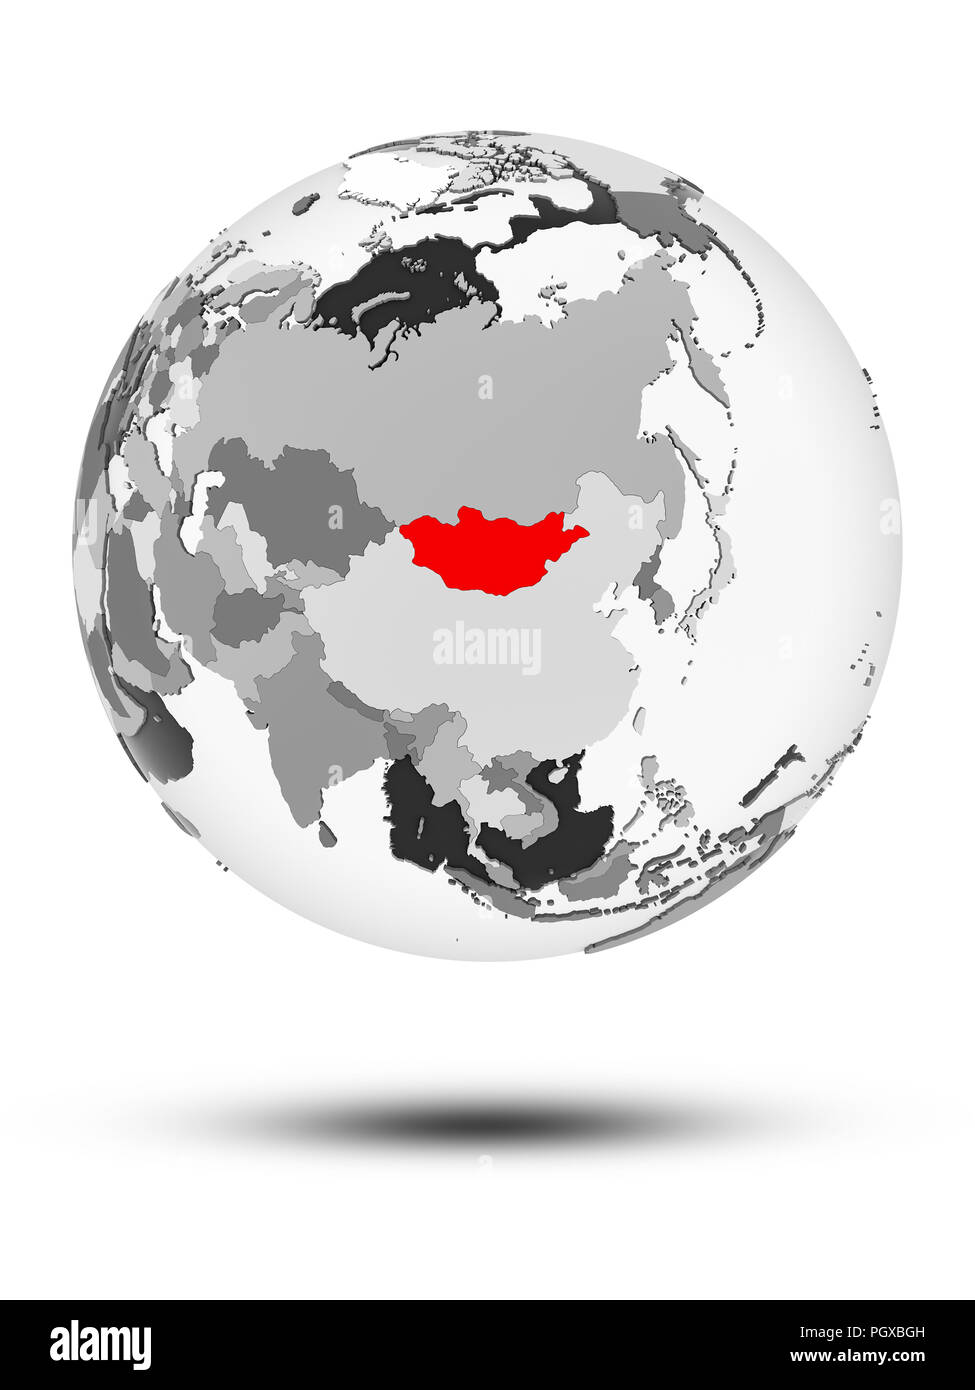 Mongolia on globe with translucent oceans isolated on white background. 3D illustration. - Stock Image